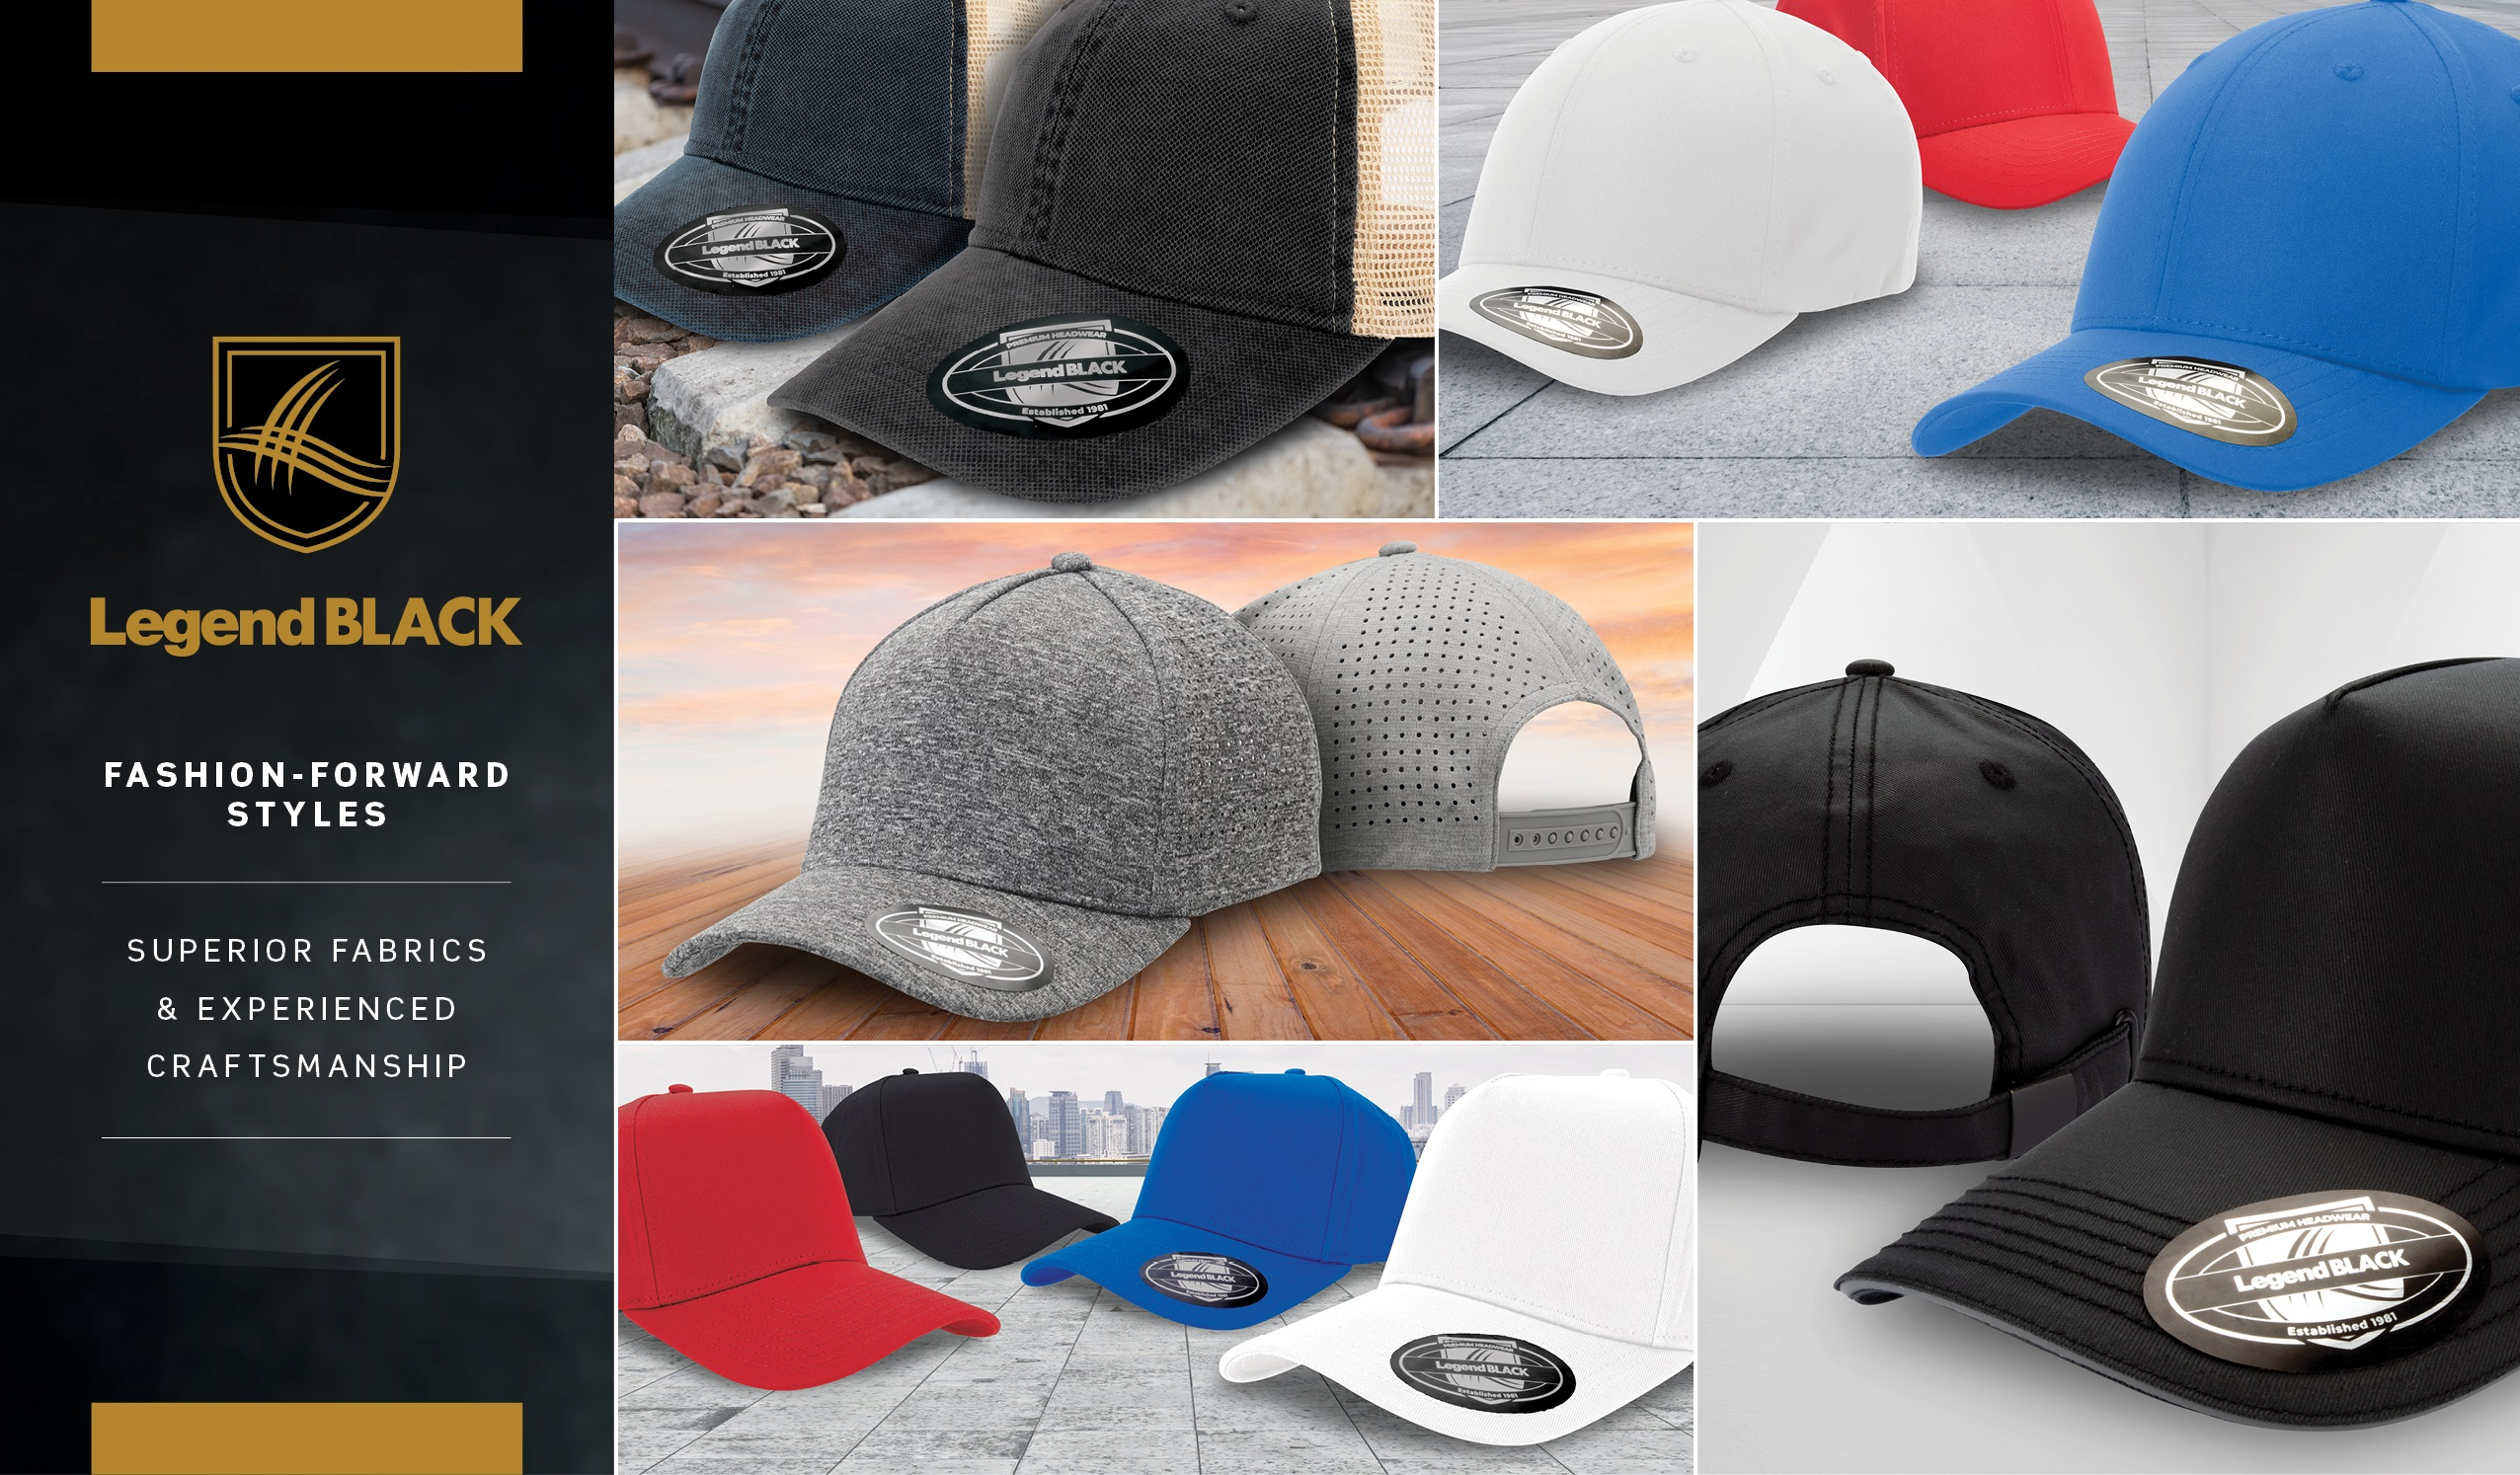 Legend Black Headwear premium caps